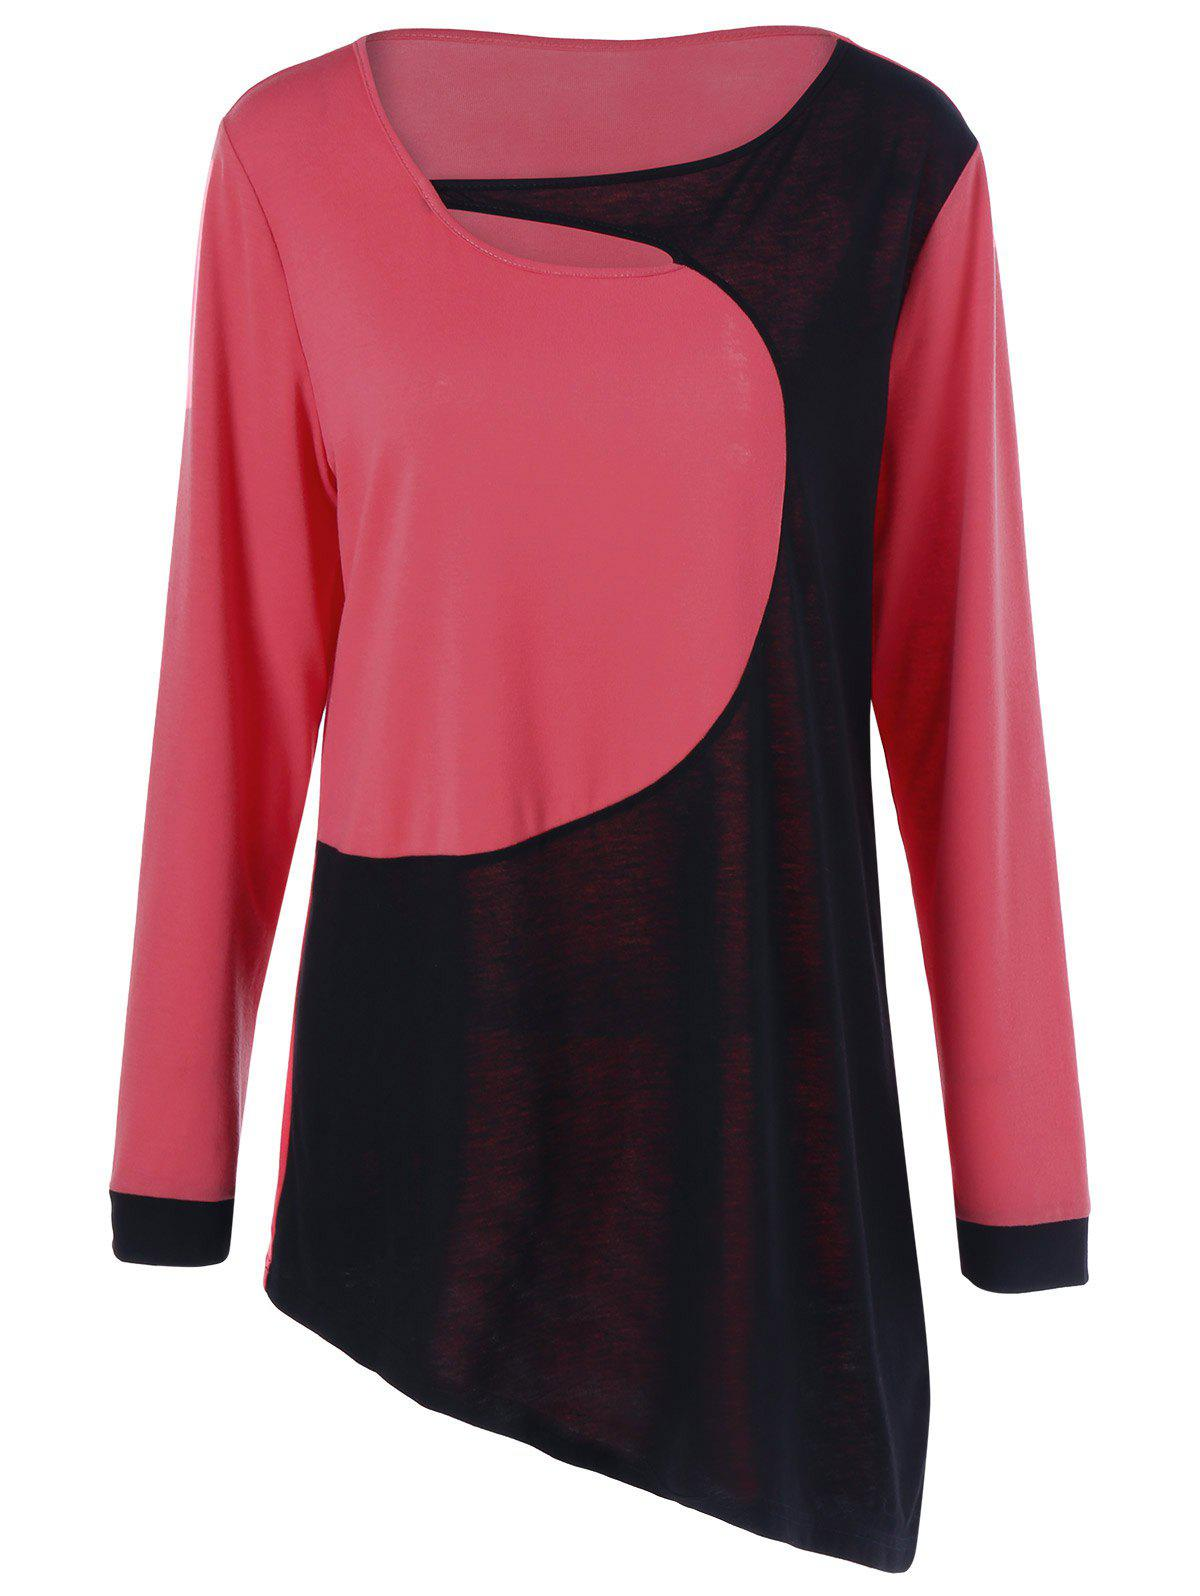 Color Block Plus Size Cut Out T-Shirt - BLACK/RED XL